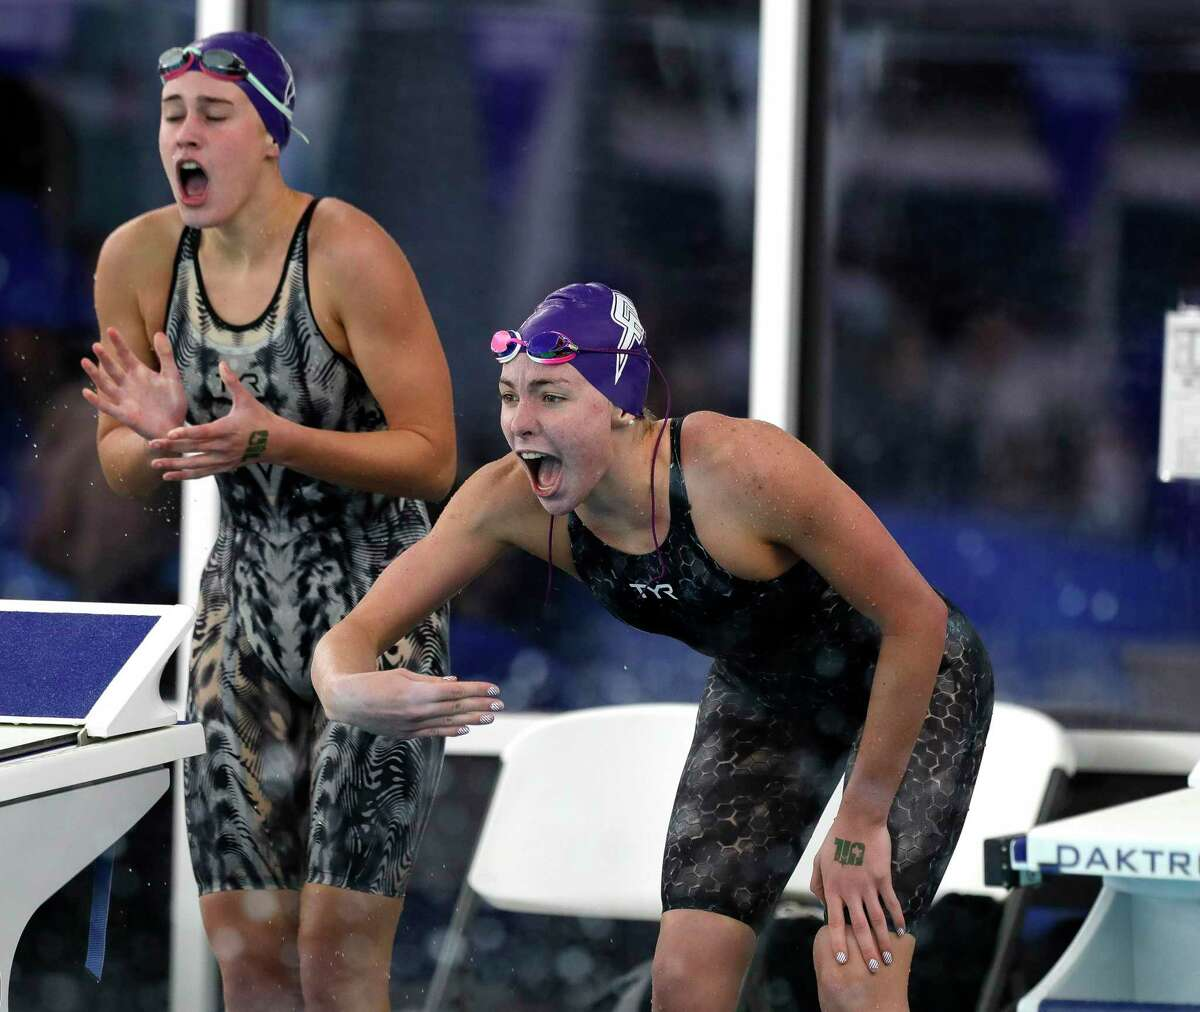 Fulshear swimmers cheer as they compete in the Class 5A girls 200-yard freestyle relay during the UIL State Swimming & Diving Championships, Tuesday, March 2, 2021, in San Antonio.